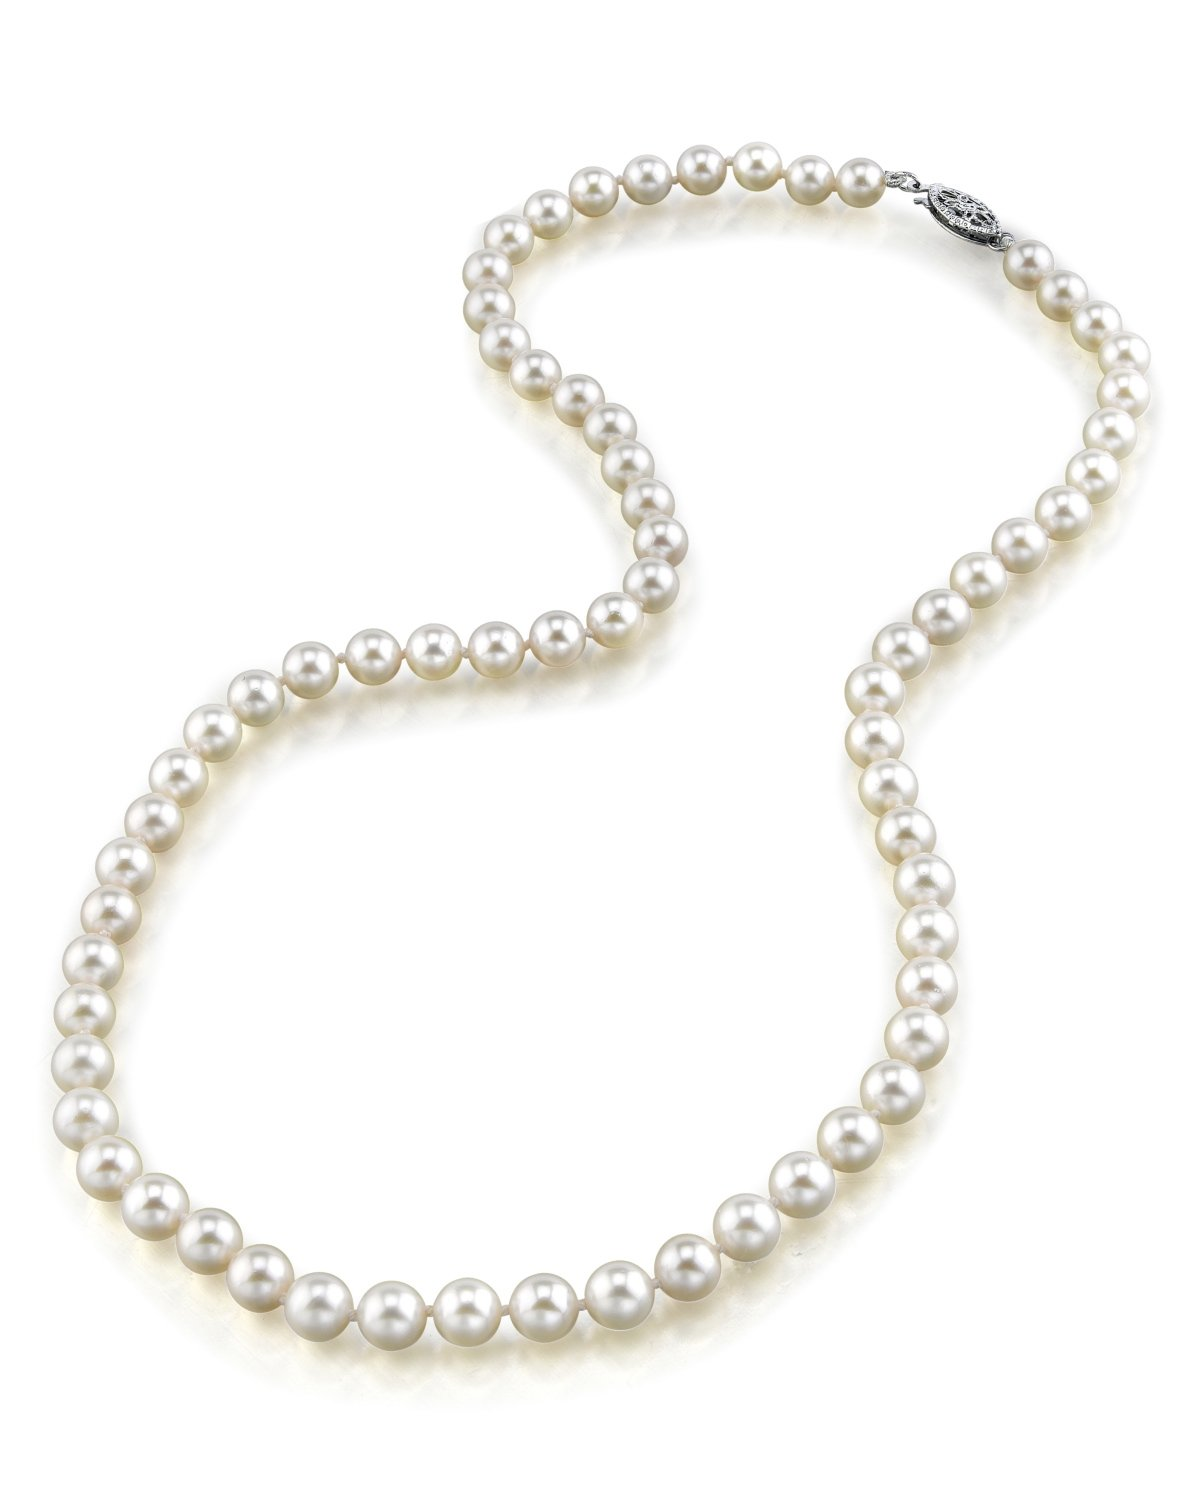 14K Gold 4.0-4.5mm Japanese Akoya Saltwater White Cultured Pearl Necklace - AAA Quality, 16'' Length